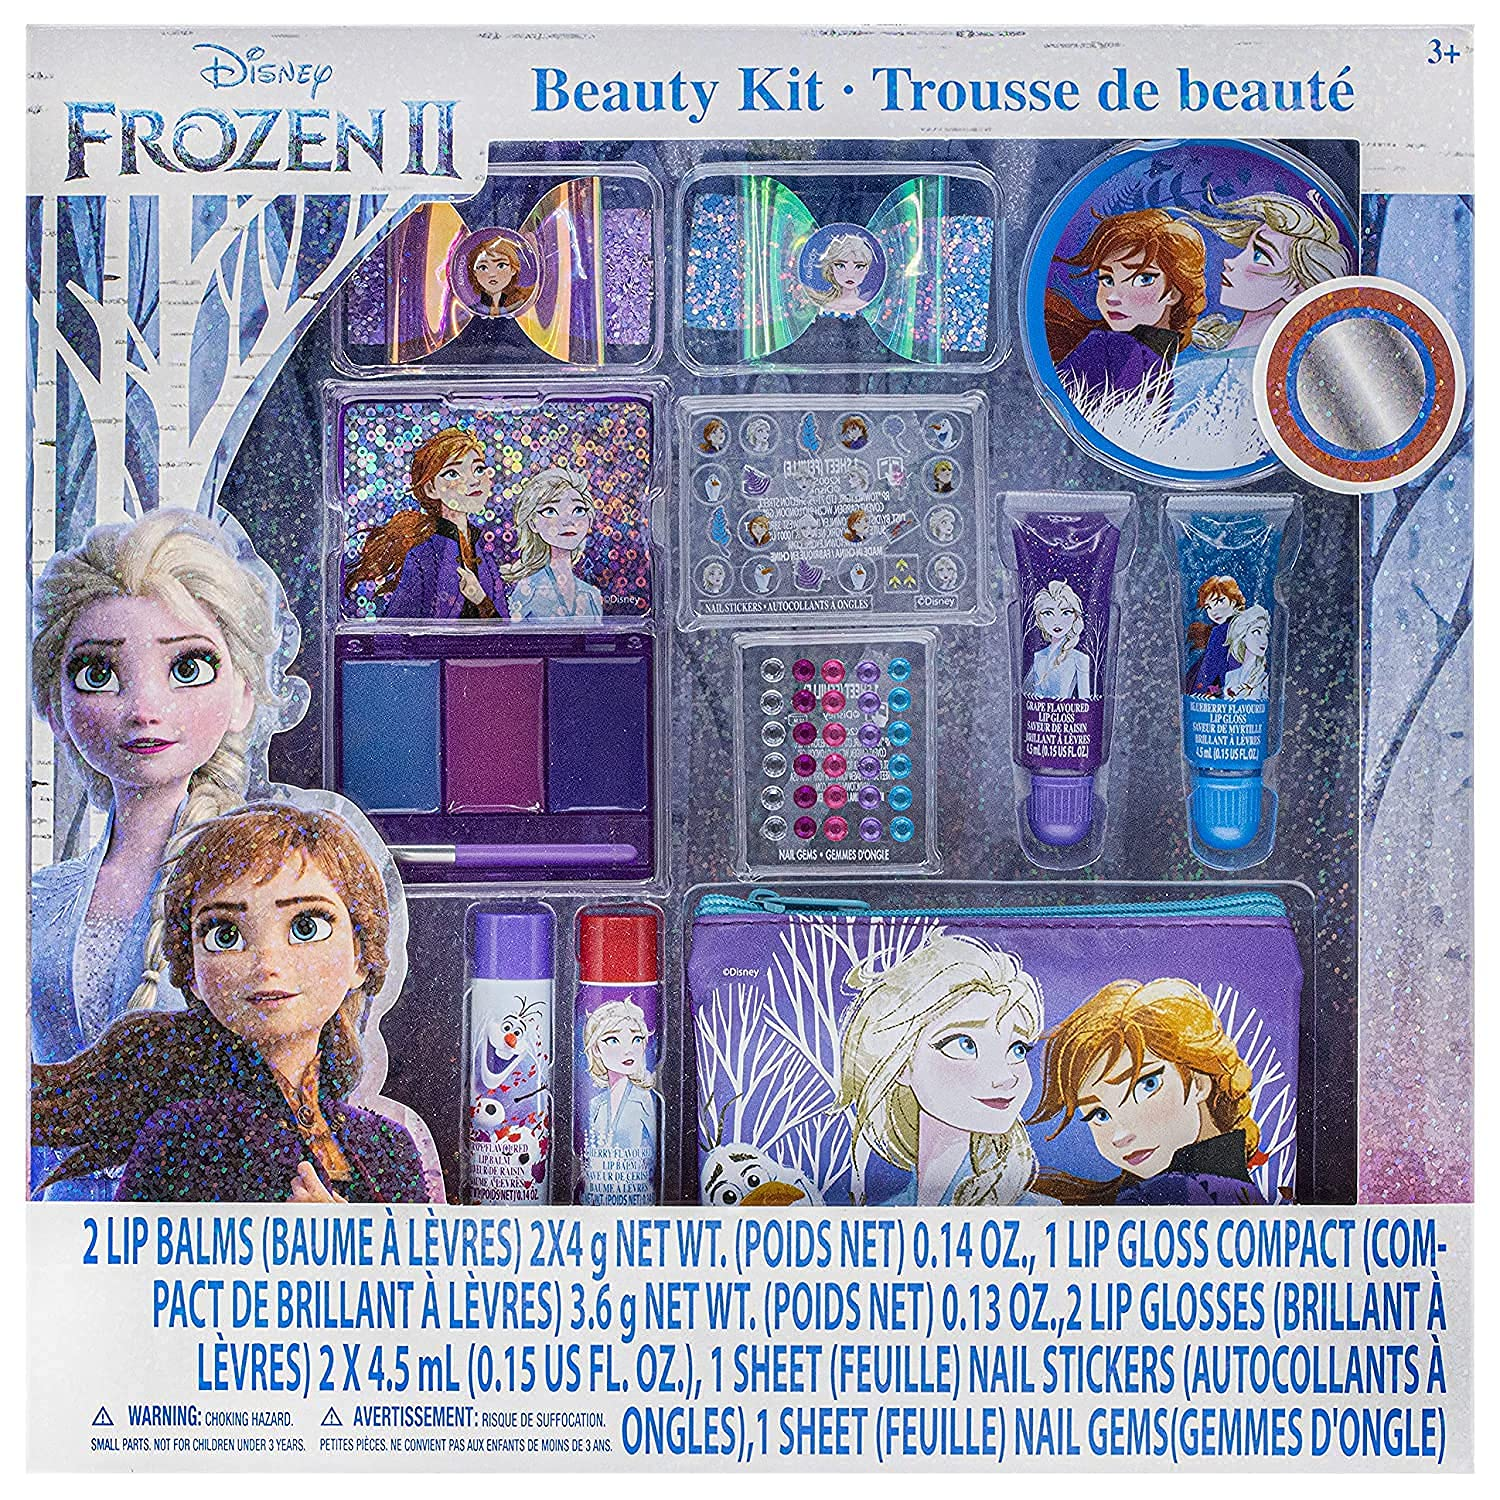 Disney Frozen 2 - Lowest price challenge Townley Girl Mega and S Hair Gift Set Purchase Foldable